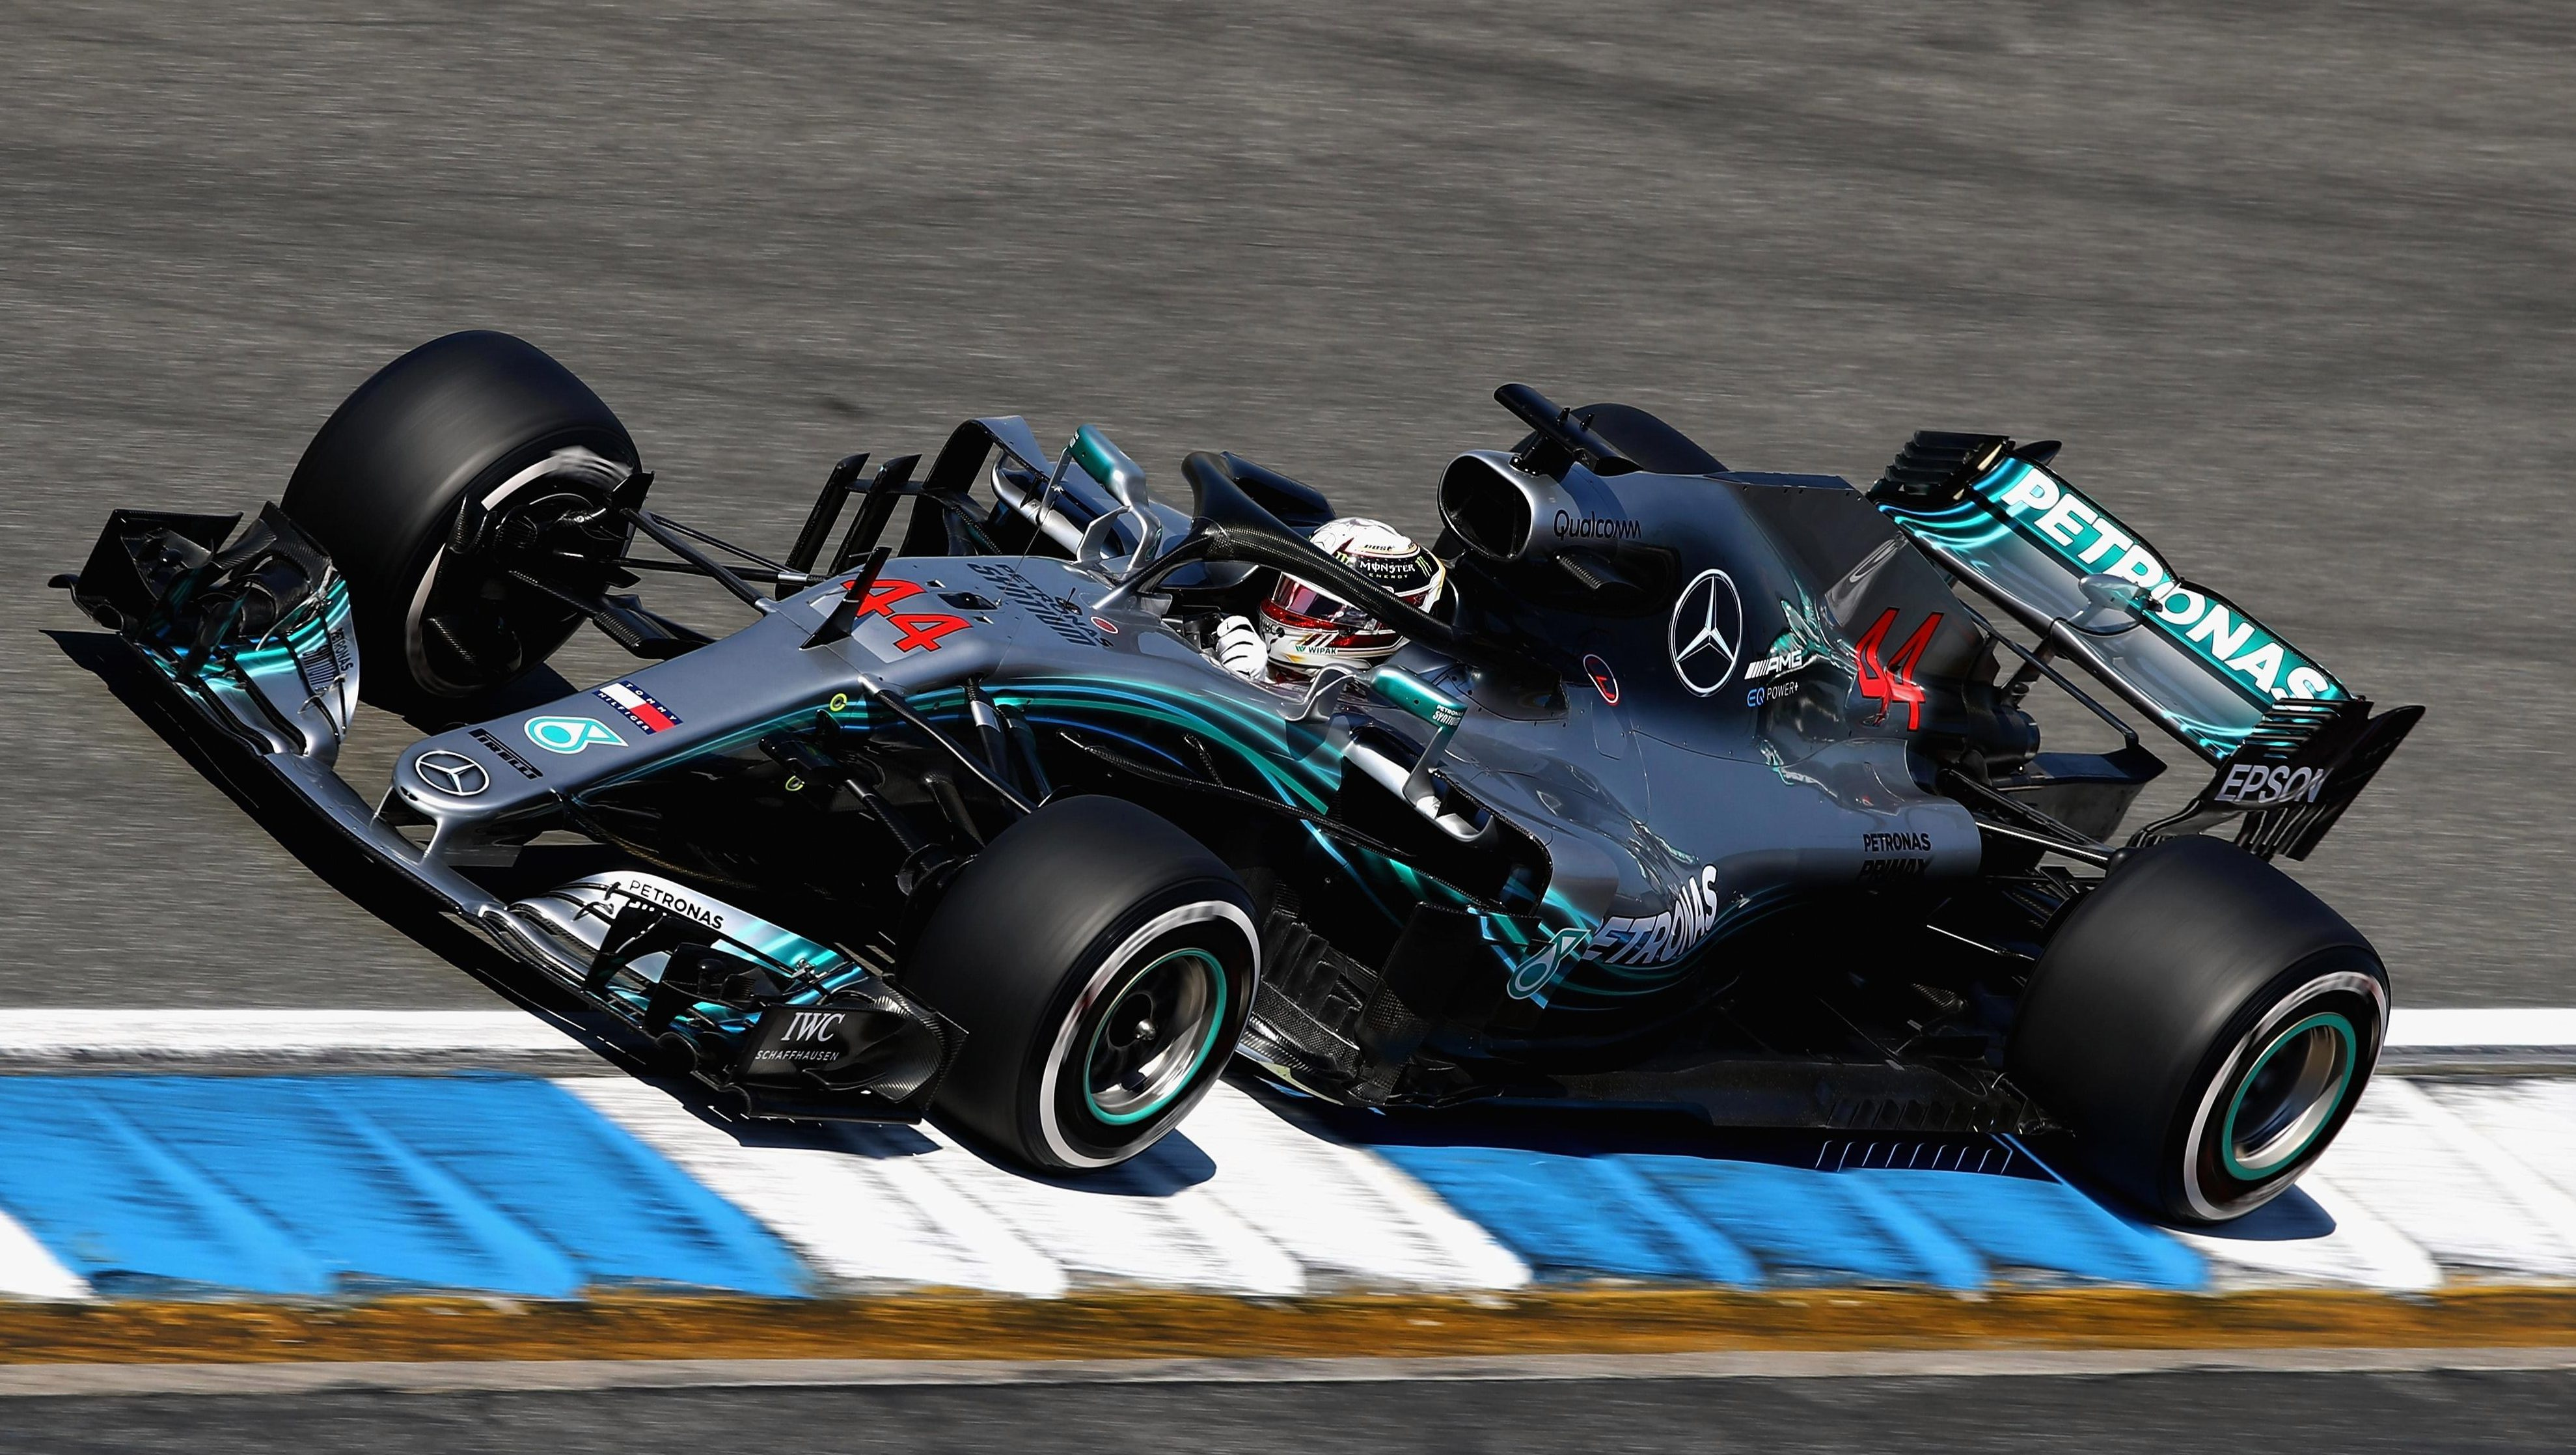 Lewis Hamilton was second in the British GP but has warmed up well in Hockenheim for the German GP this Sunday